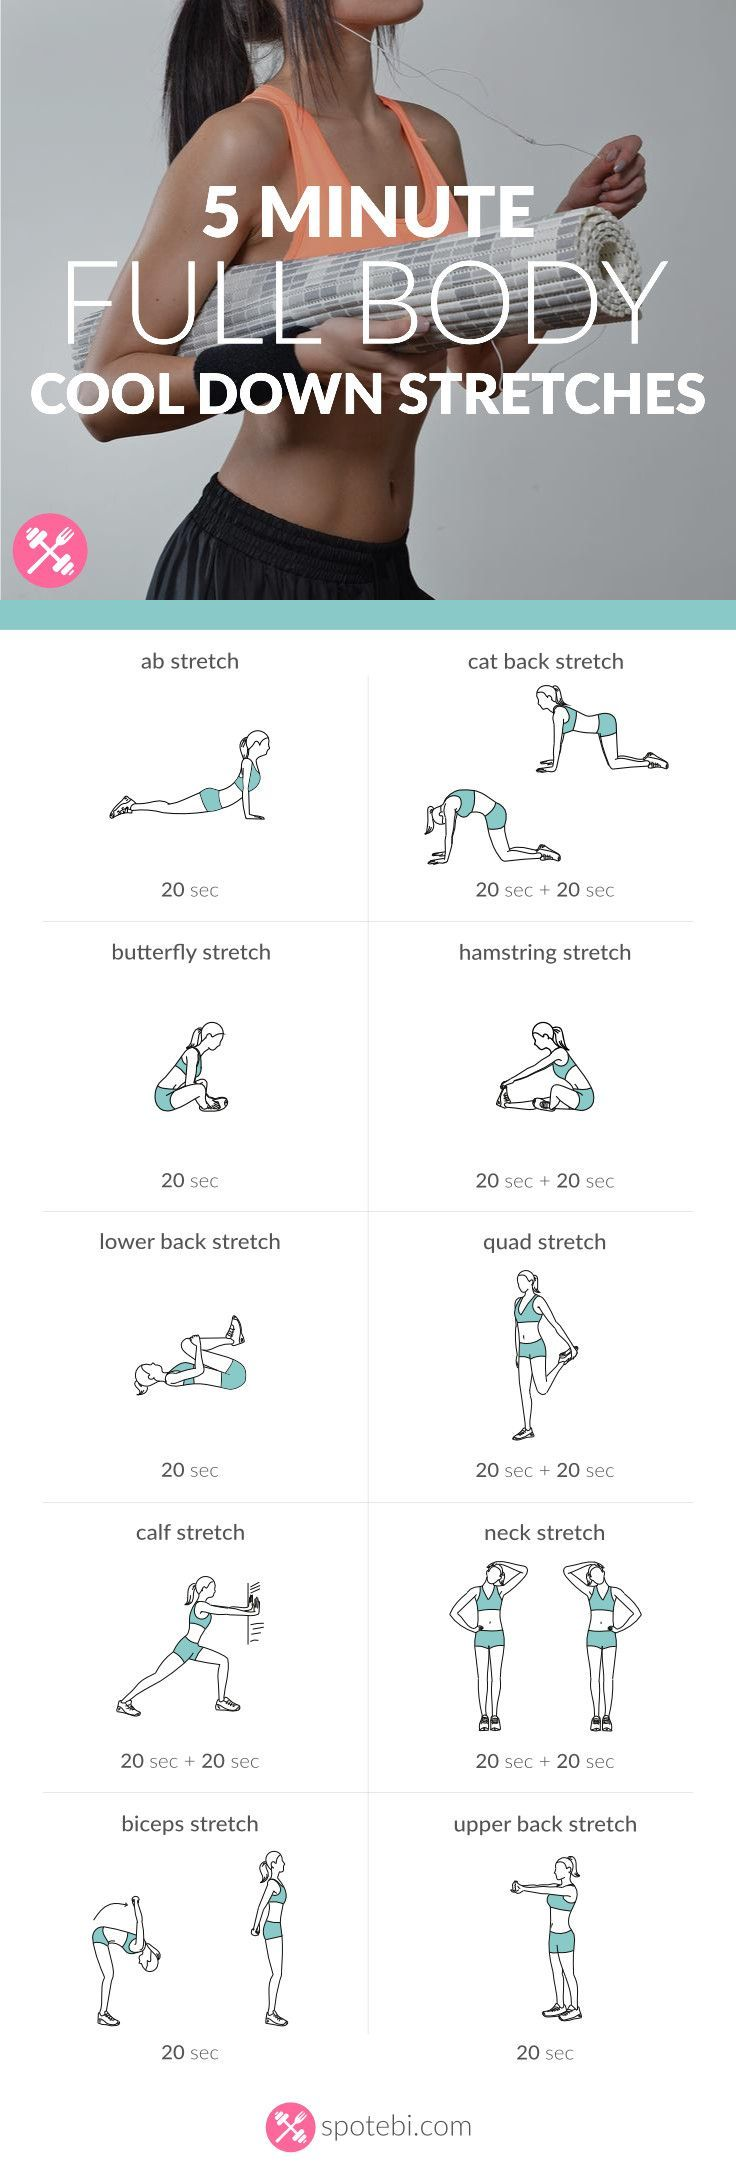 Stretch and relax your entire body with this 5 minute routine. Cool down exercises to increase muscle control, flexibility and range of motion. Have fun!<br /> http://www.spotebi.com/workout-routines/5-minute-full-body-cool-down-exercises/